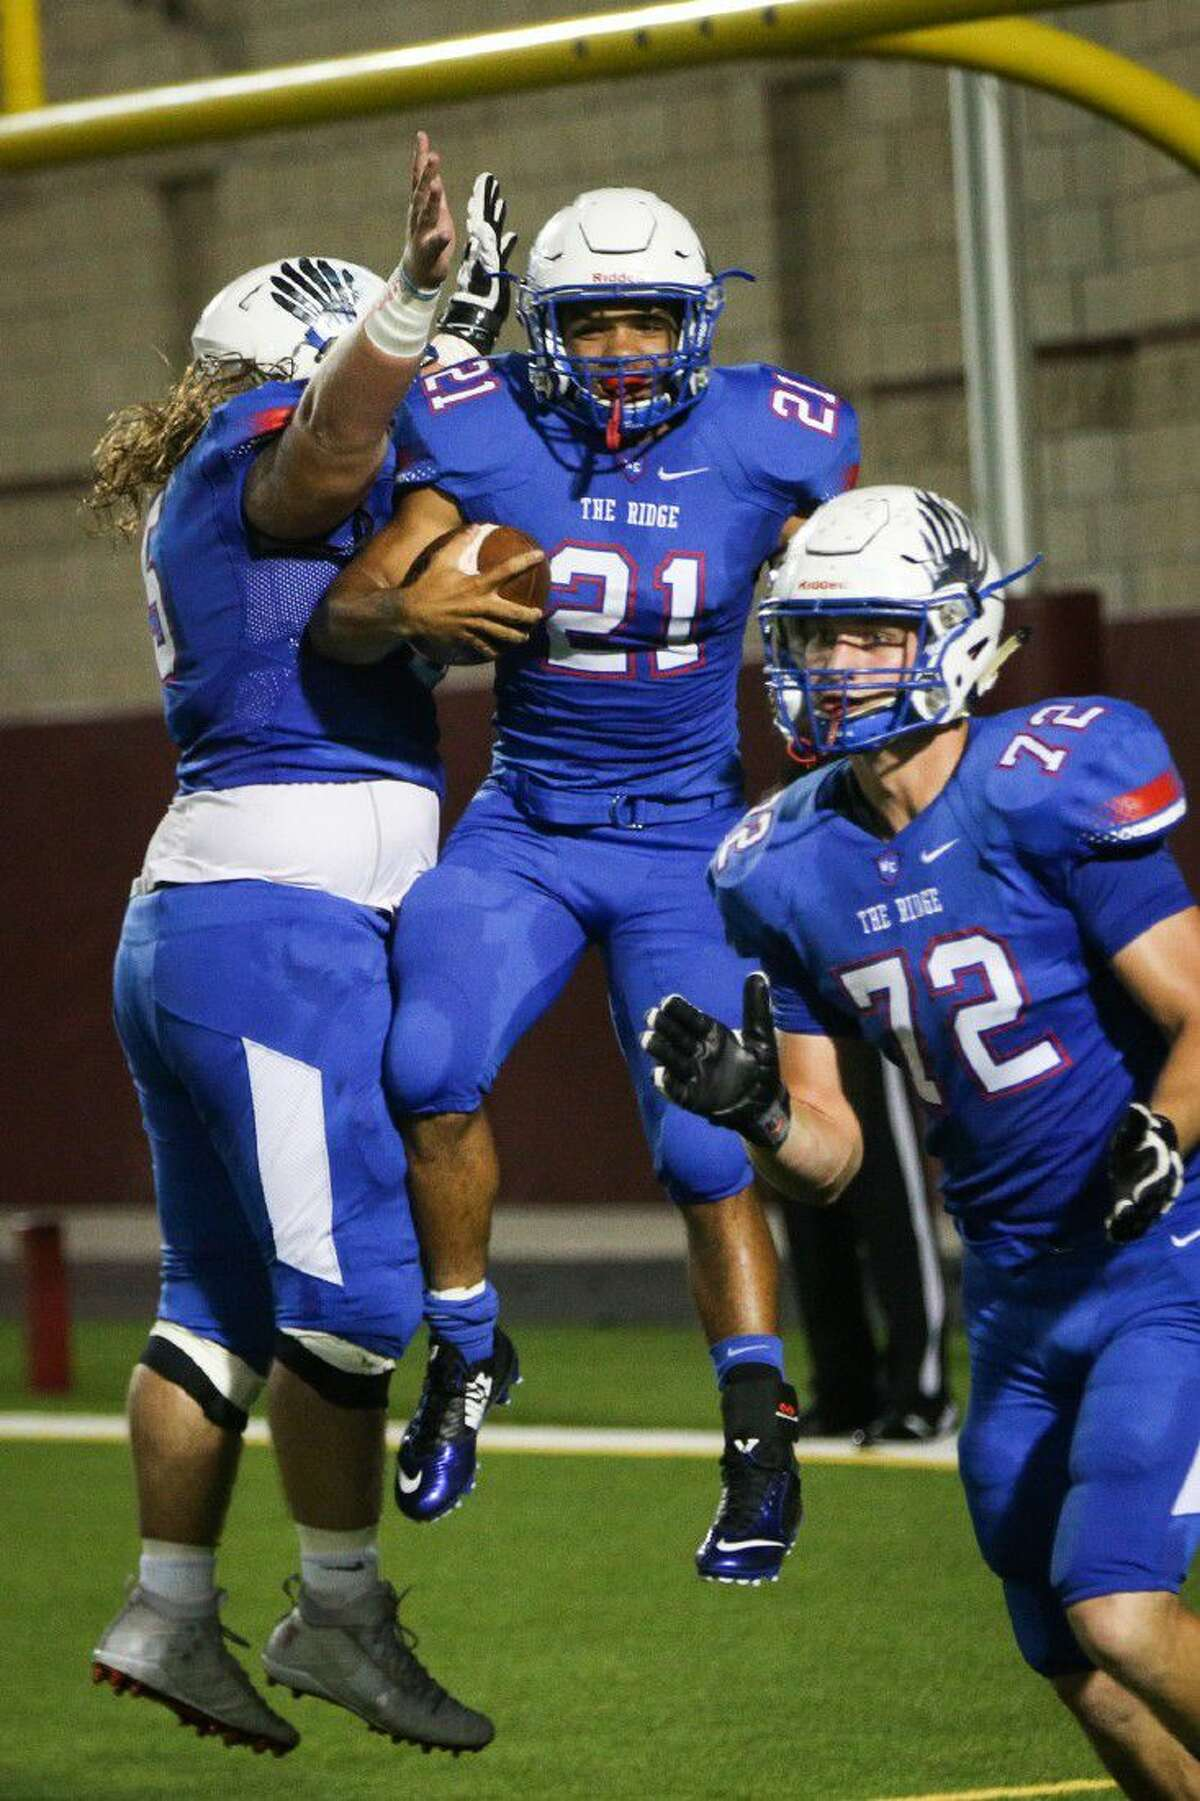 Oak Ridge's Jimmie Moore (21) celebrates with teammates after scoring a touchdown during the varsity football game against Conroe on Friday, Sept. 16, 2016, at Woodforest Stadium in The Woodlands, Texas. To view more photos from the game, go to HCNPics.com.